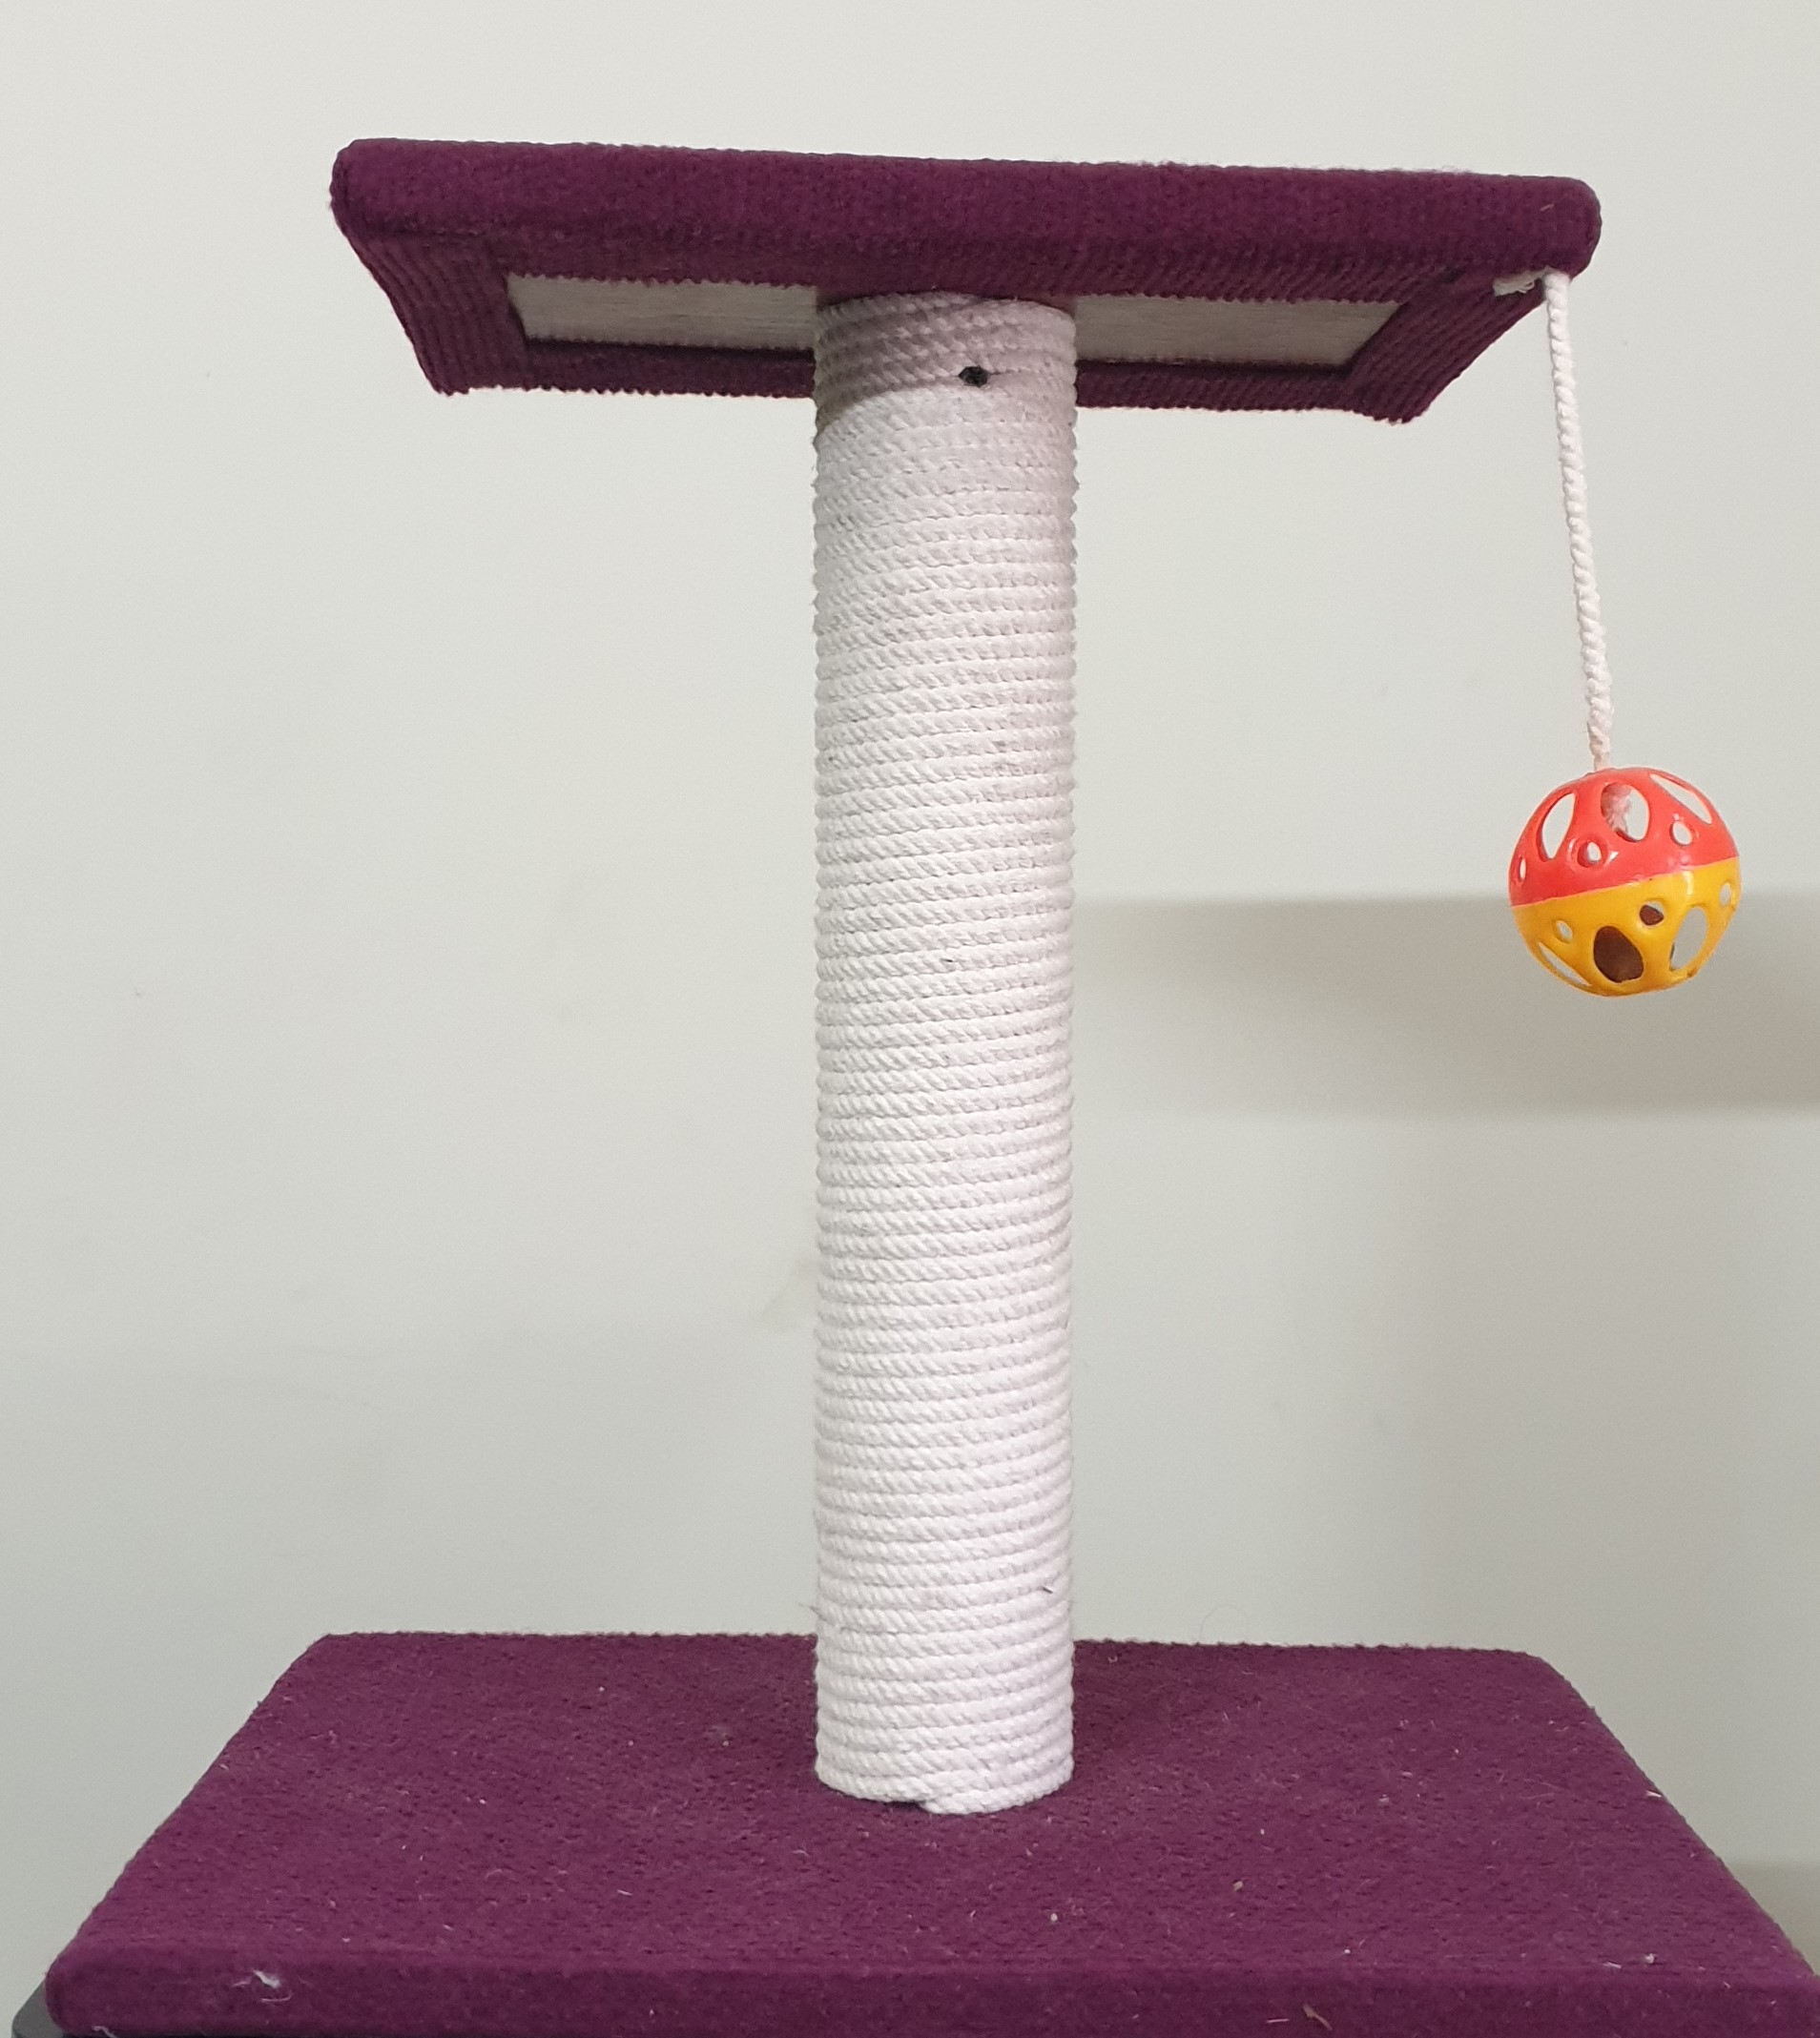 Square Scratching Post for Cat - Pet Accessories - Pet Store - Pet supplies